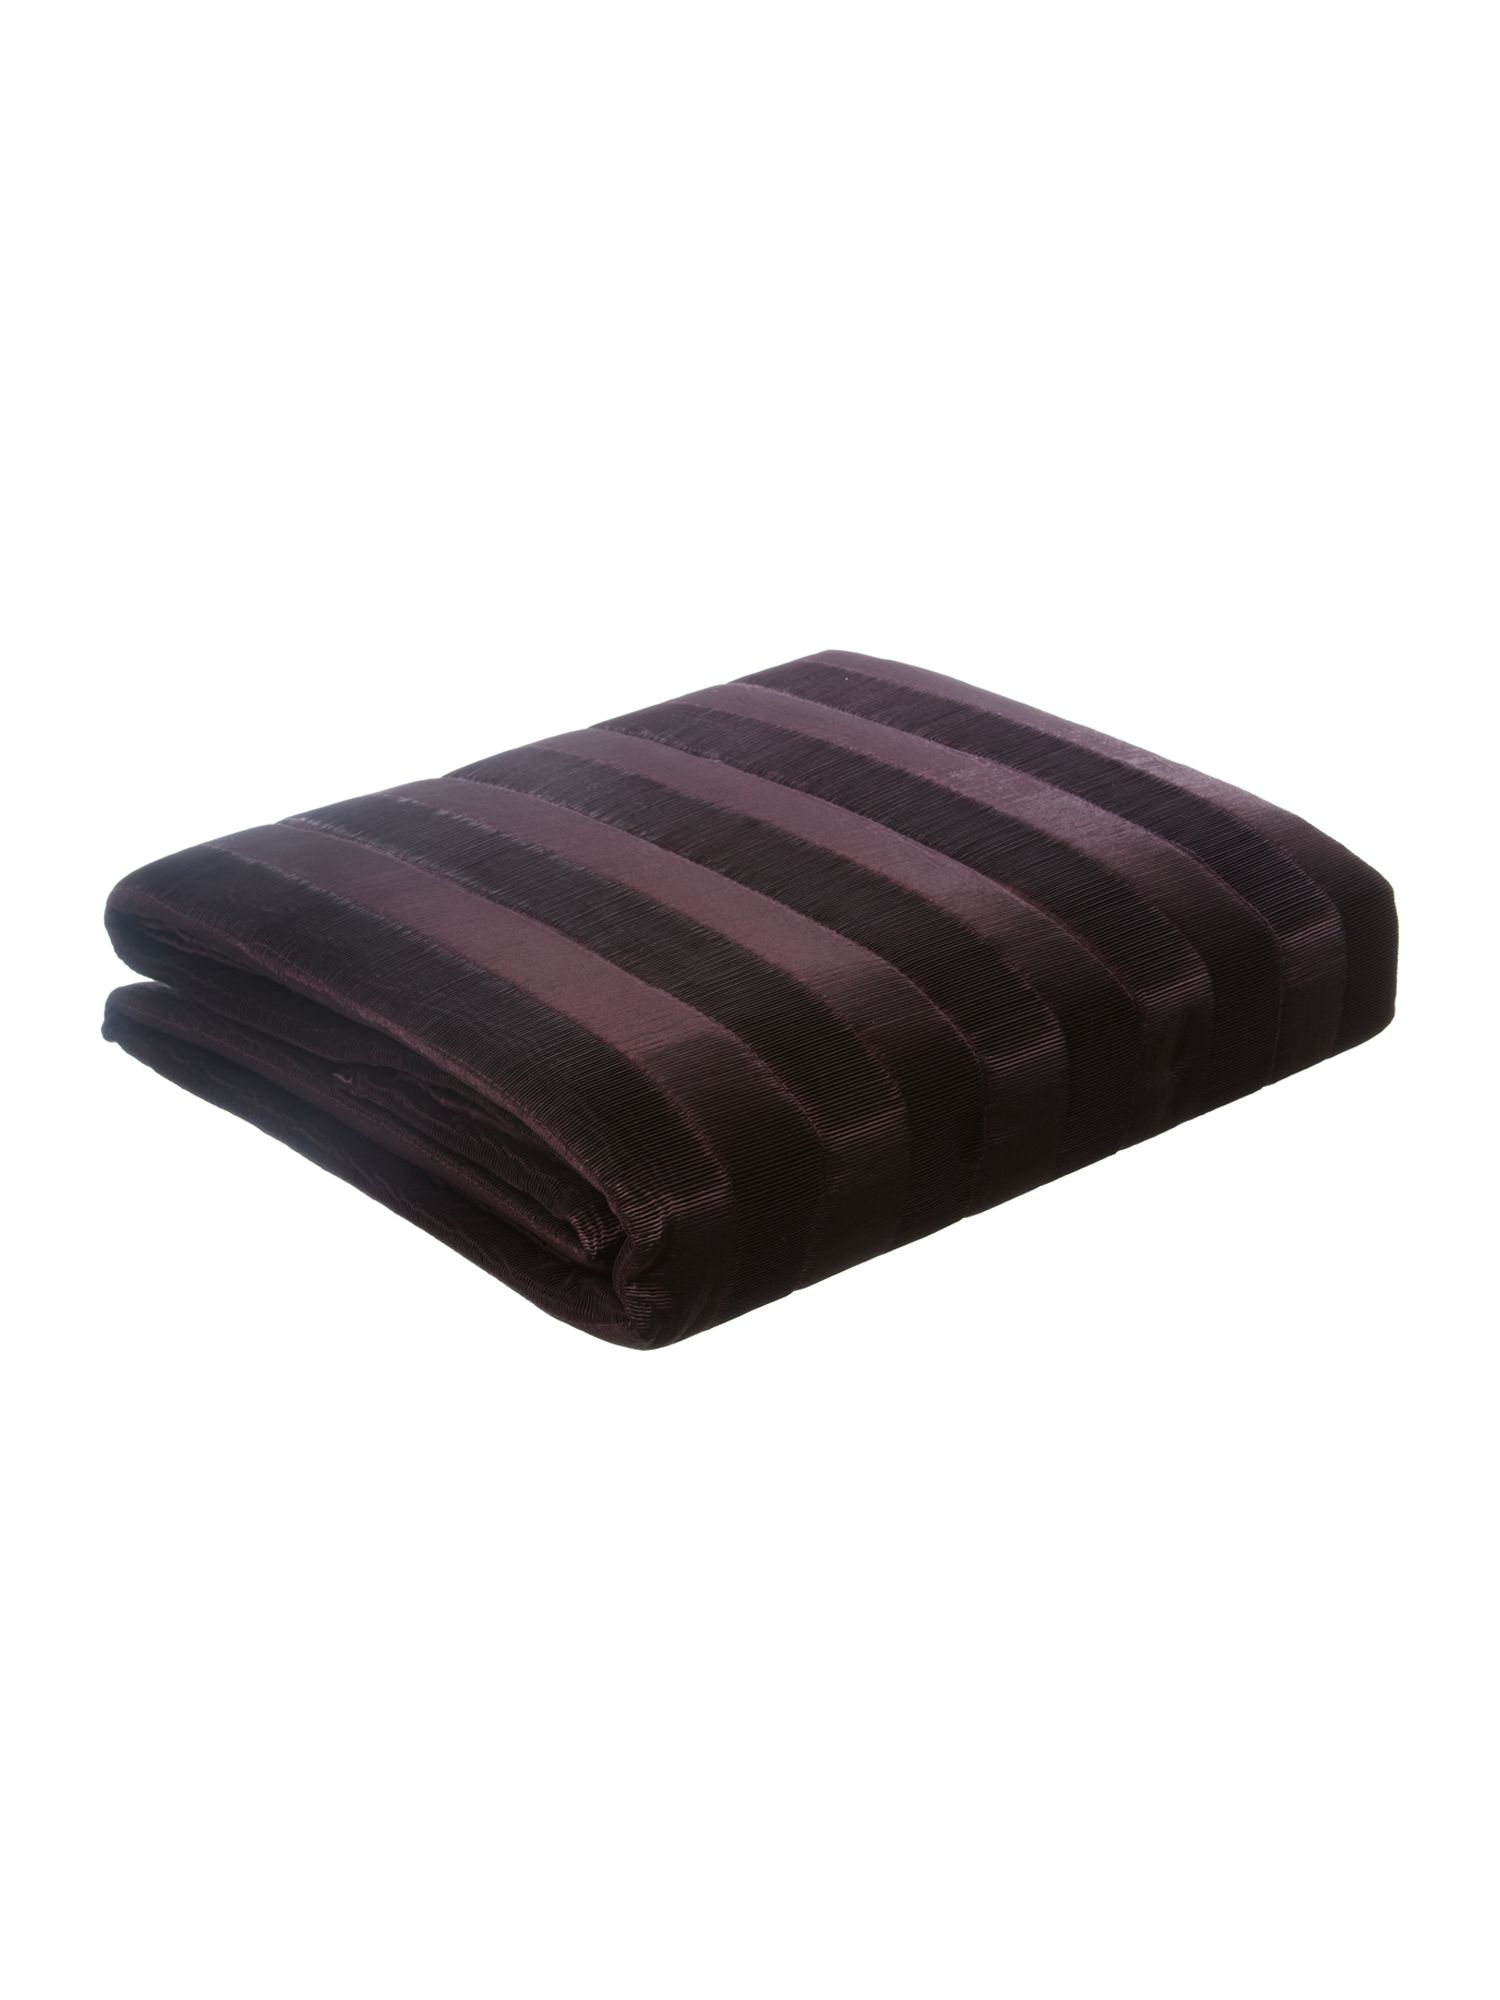 Heat pleat bedspread in plum